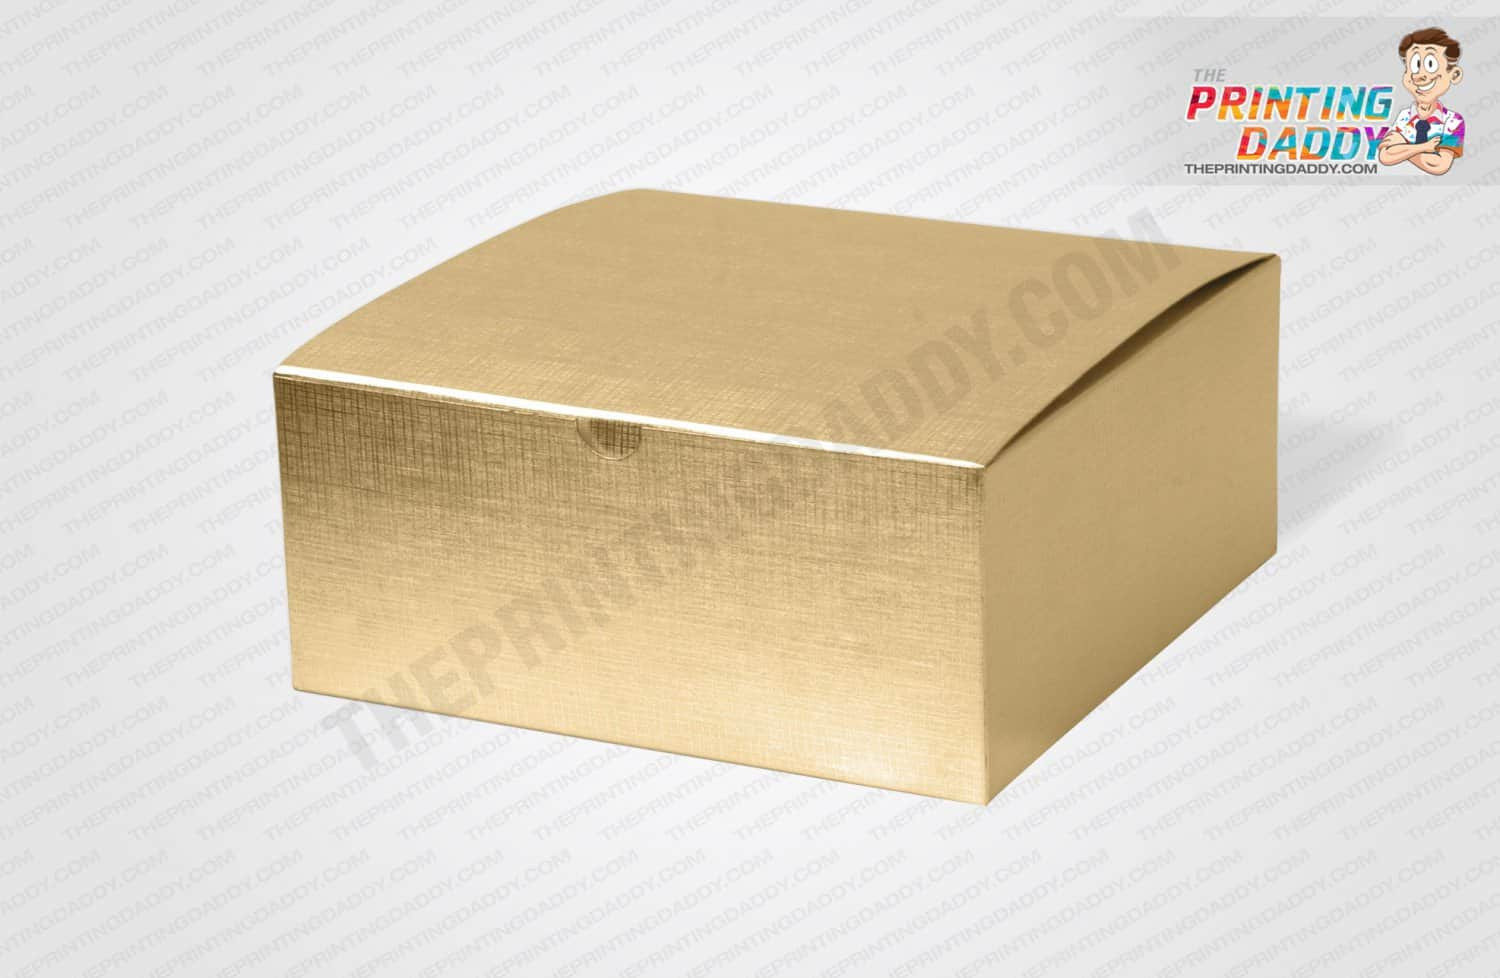 9fe26bbbfe7d Custom Metallic Foil Boxes | The Printing Daddy